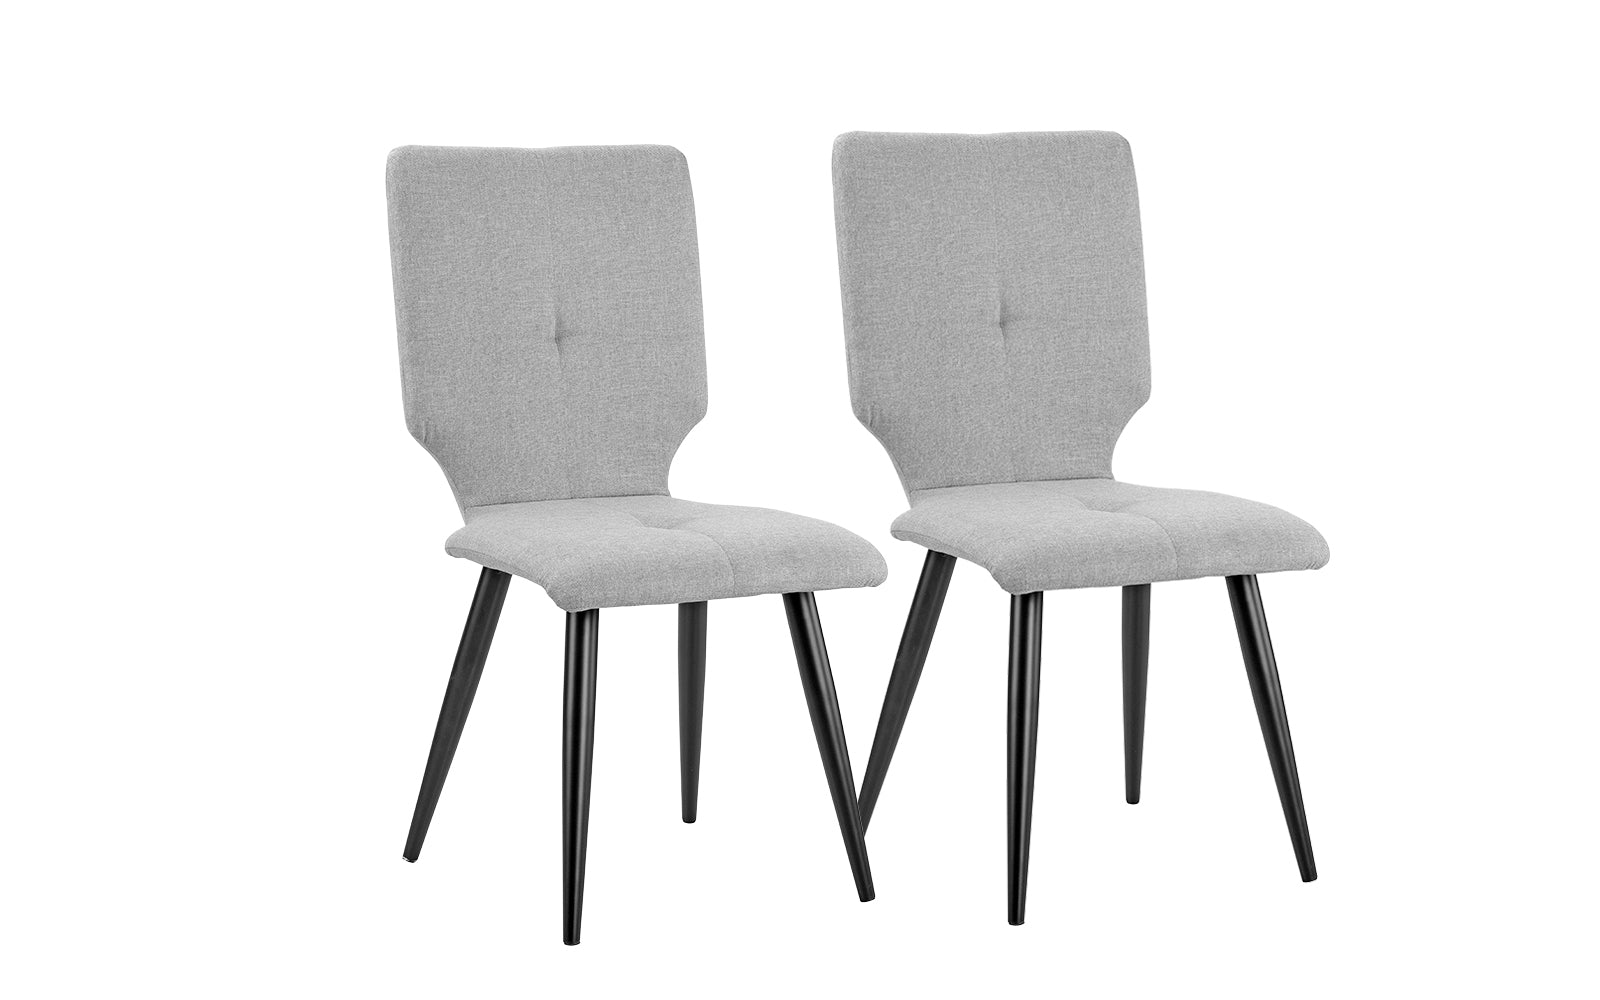 Ava set of 2 modern upholstered dining chairs